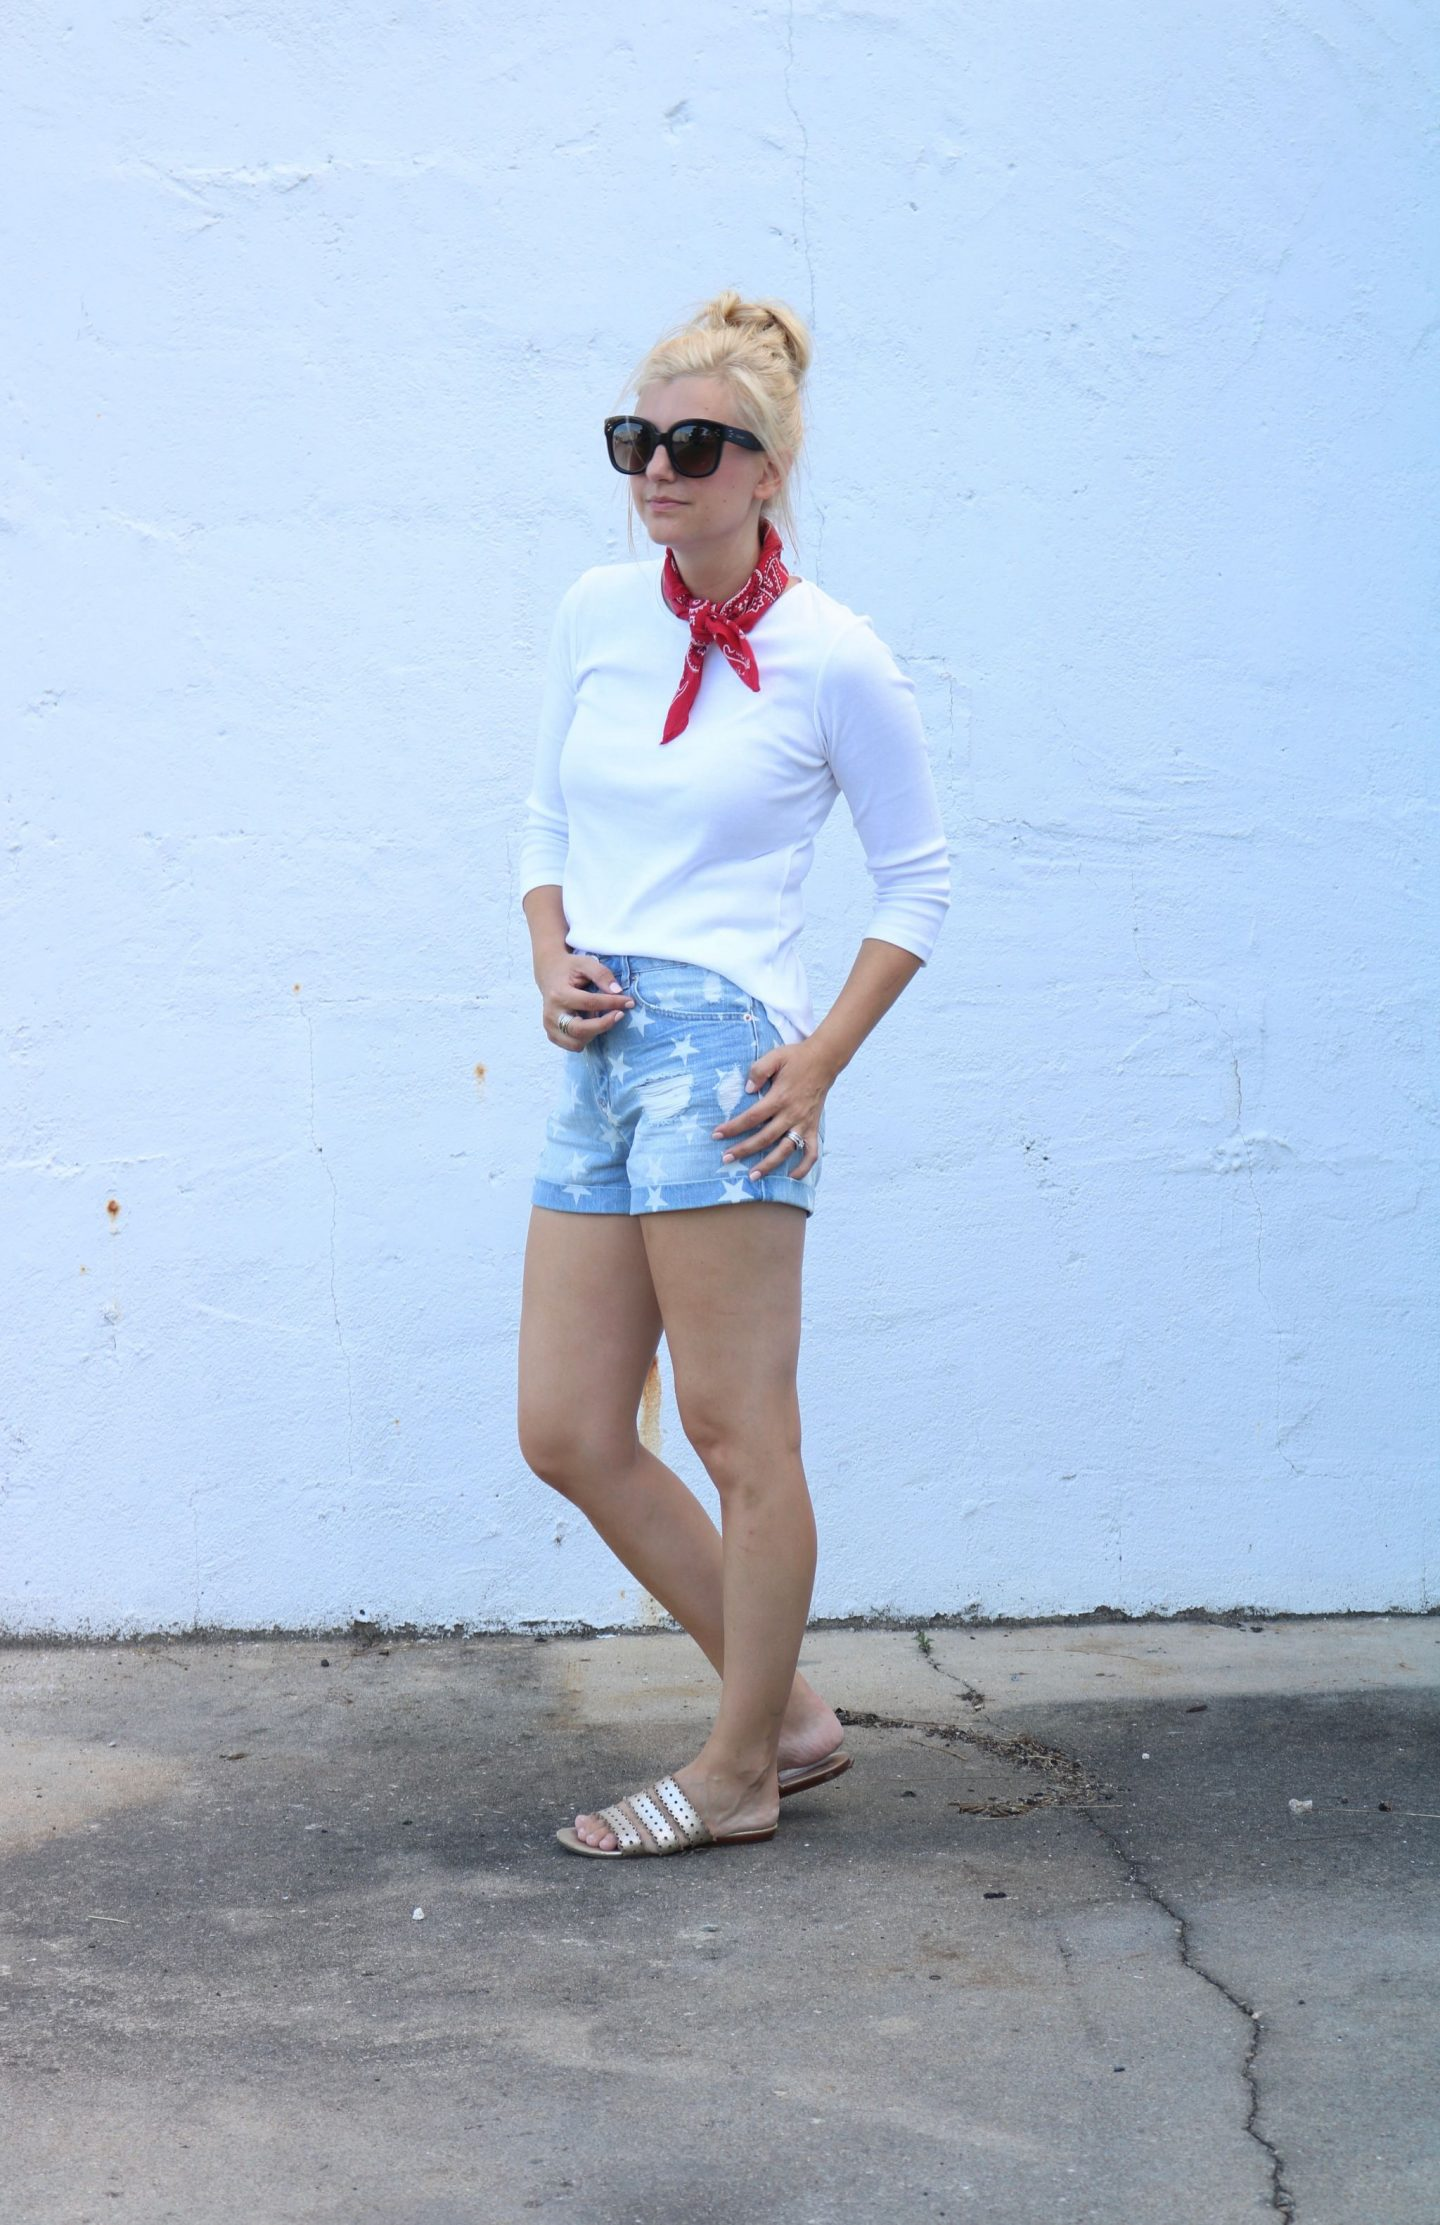 forever 21 denim star shorts, red bandana, celine audrey sunglasses